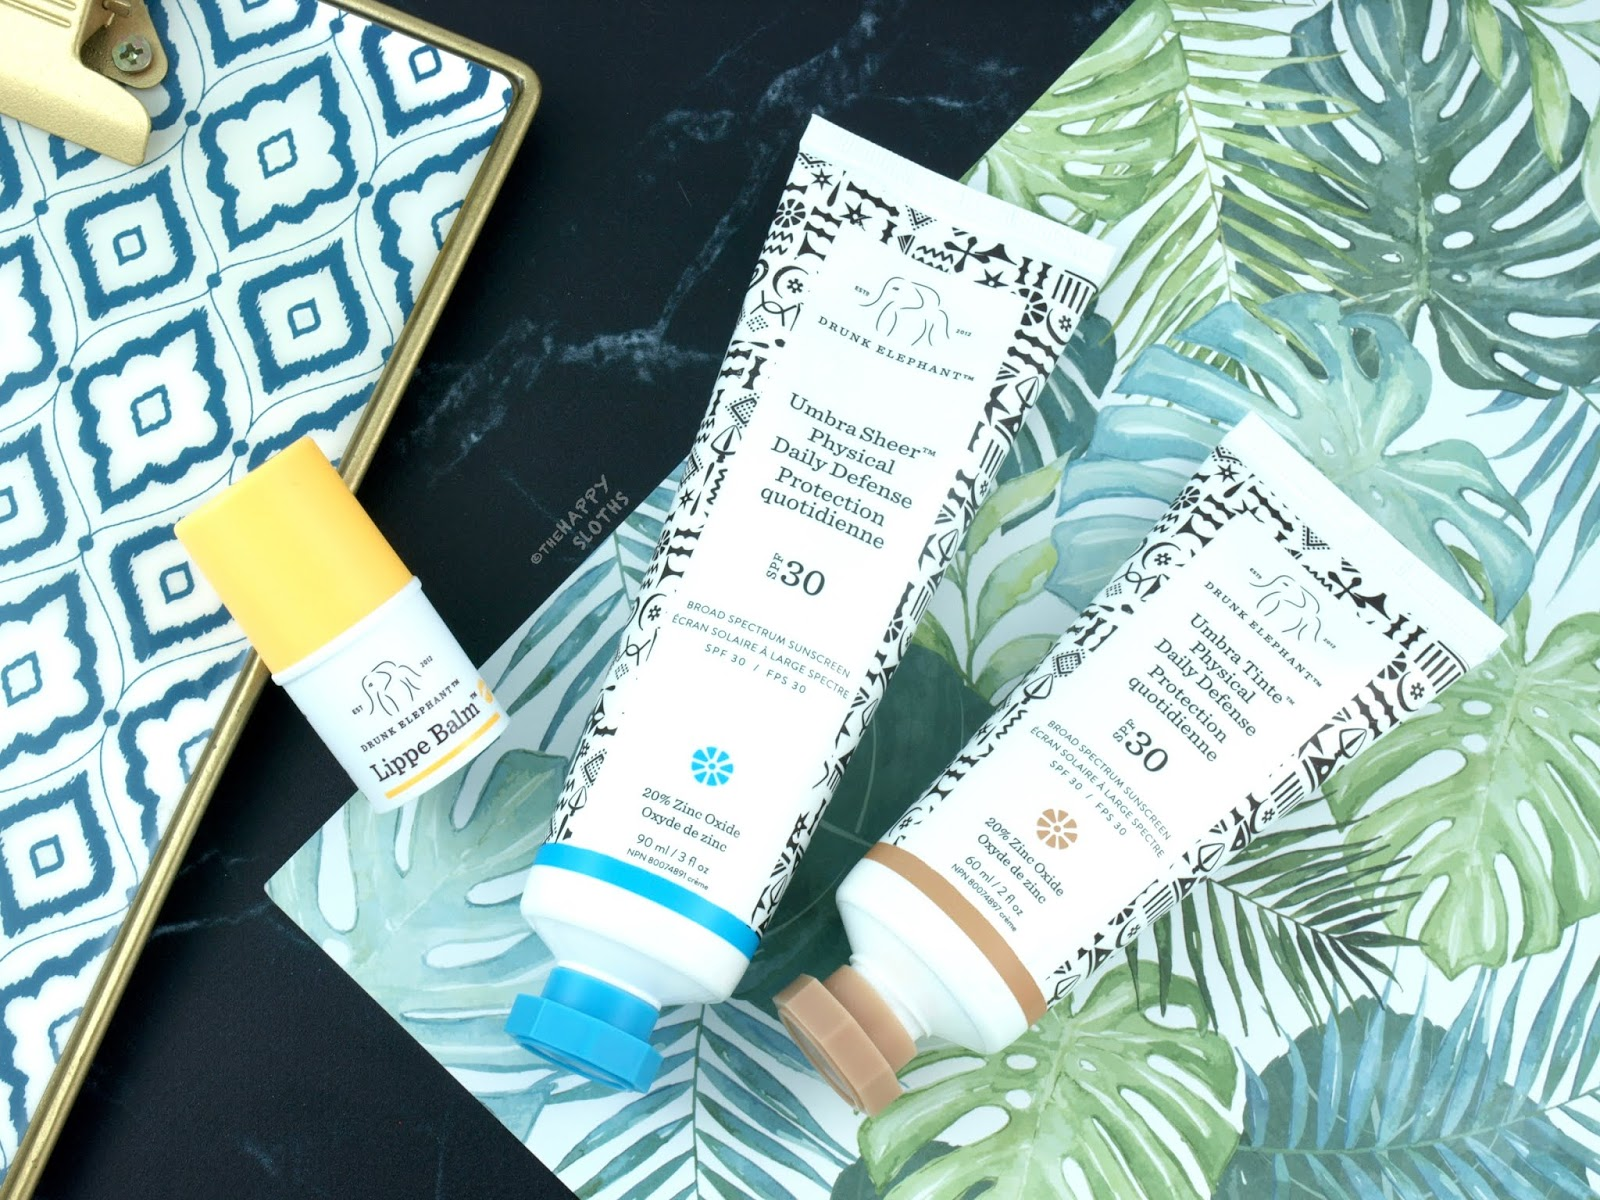 Drunk Elephant | Umbra Sheer Physical Daily Defense SPF 30, Umbra Tinte Physical Daily Defense SPF 30 & Lippe Balm: Review